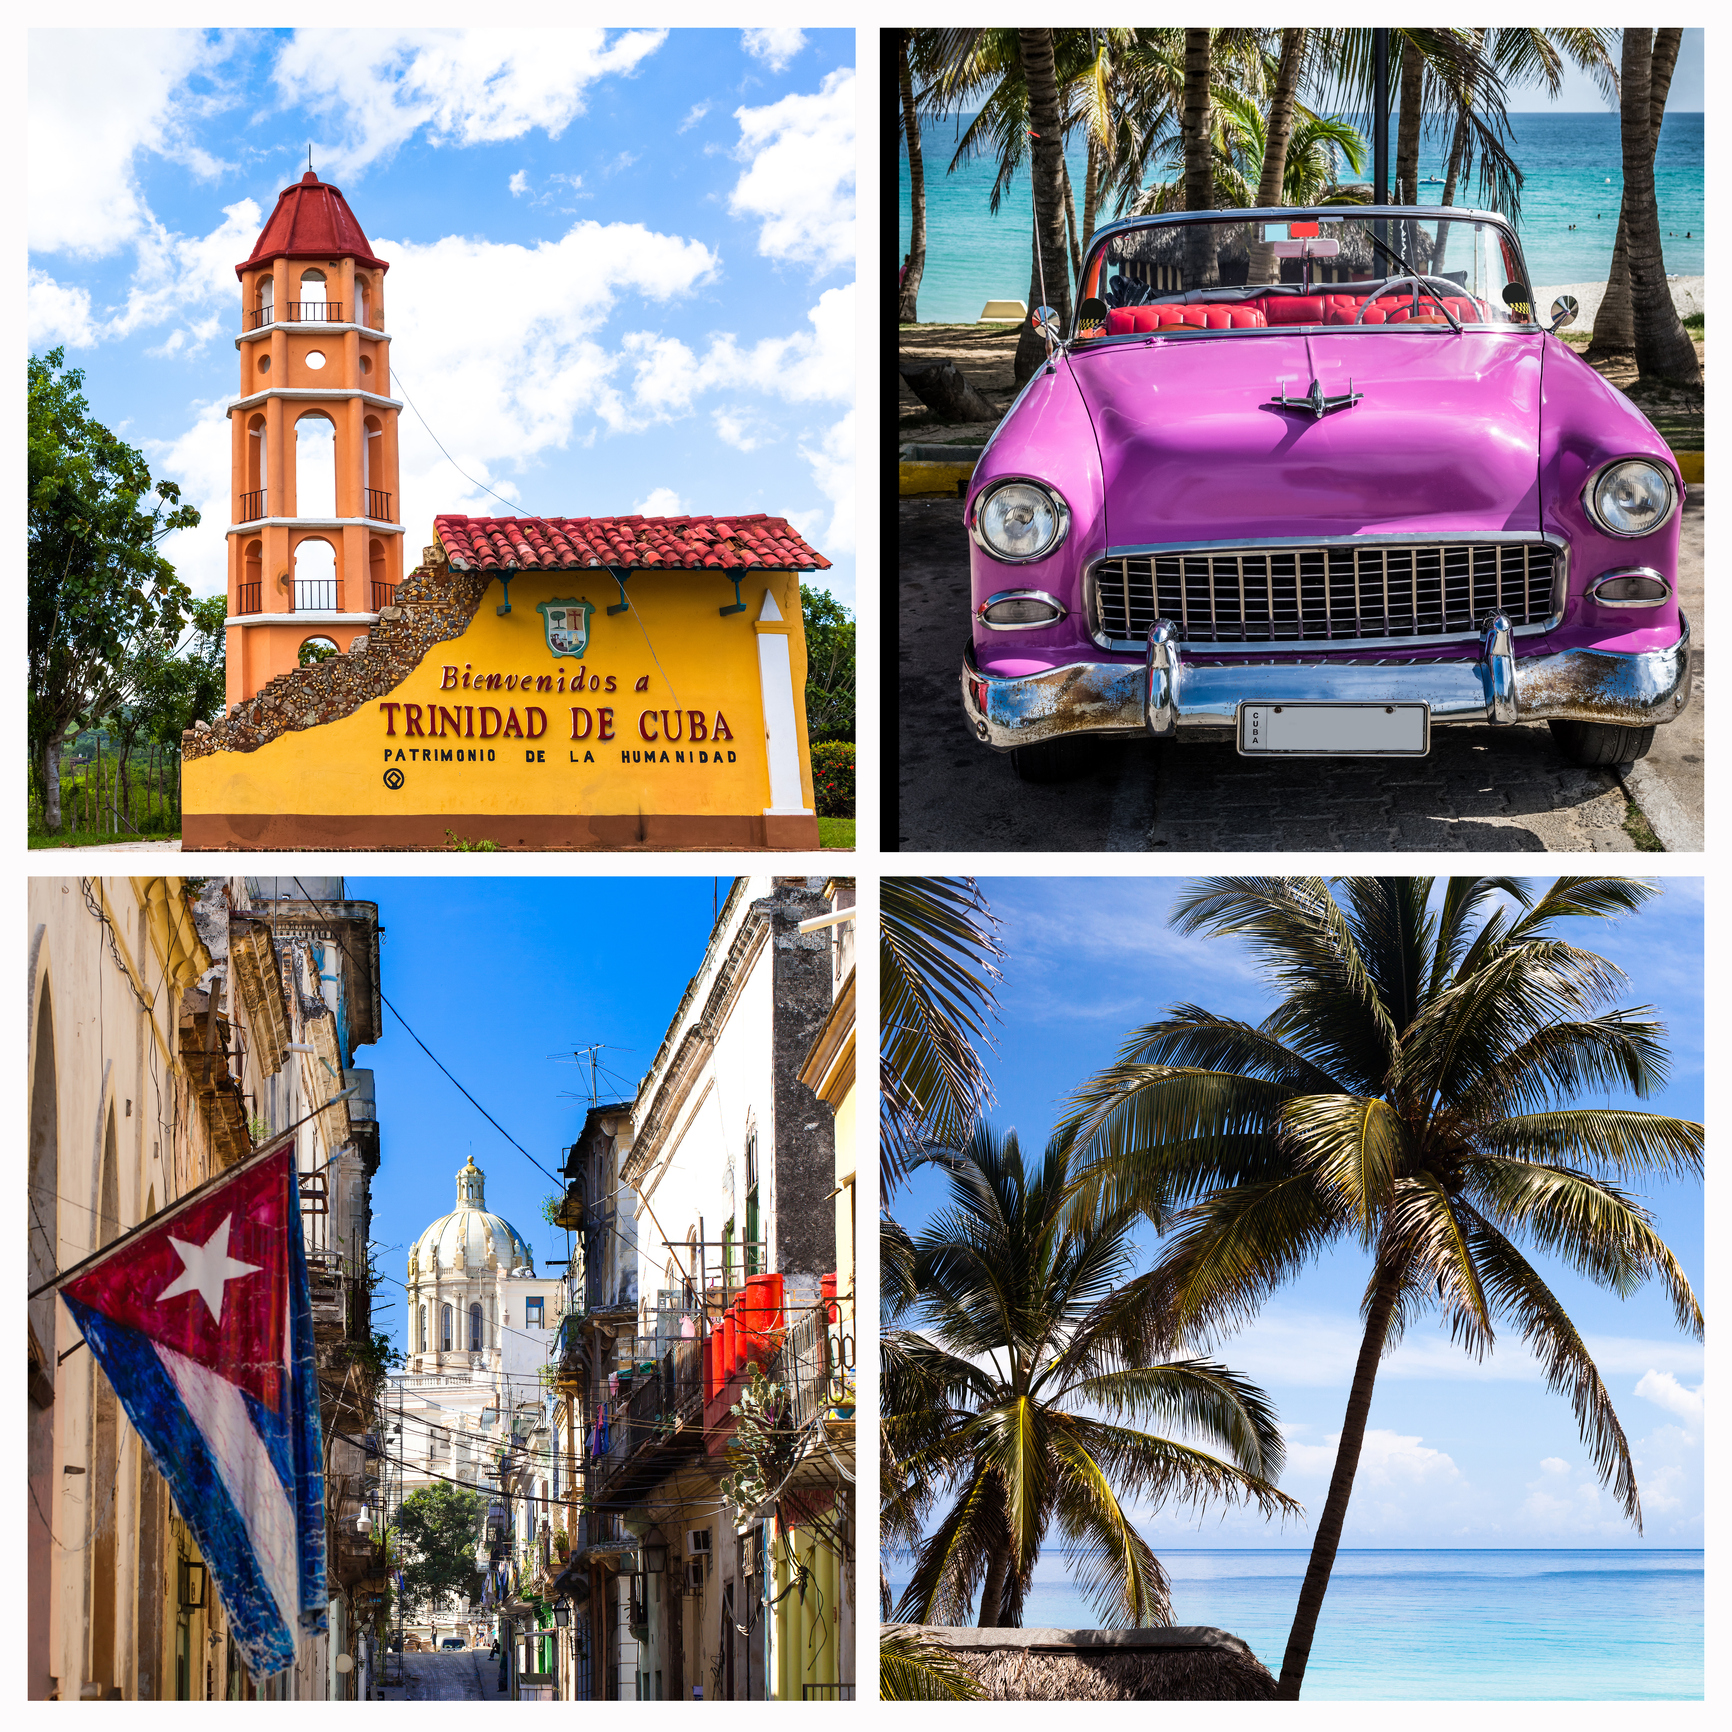 Travel to Cuba with Cosmos Tours